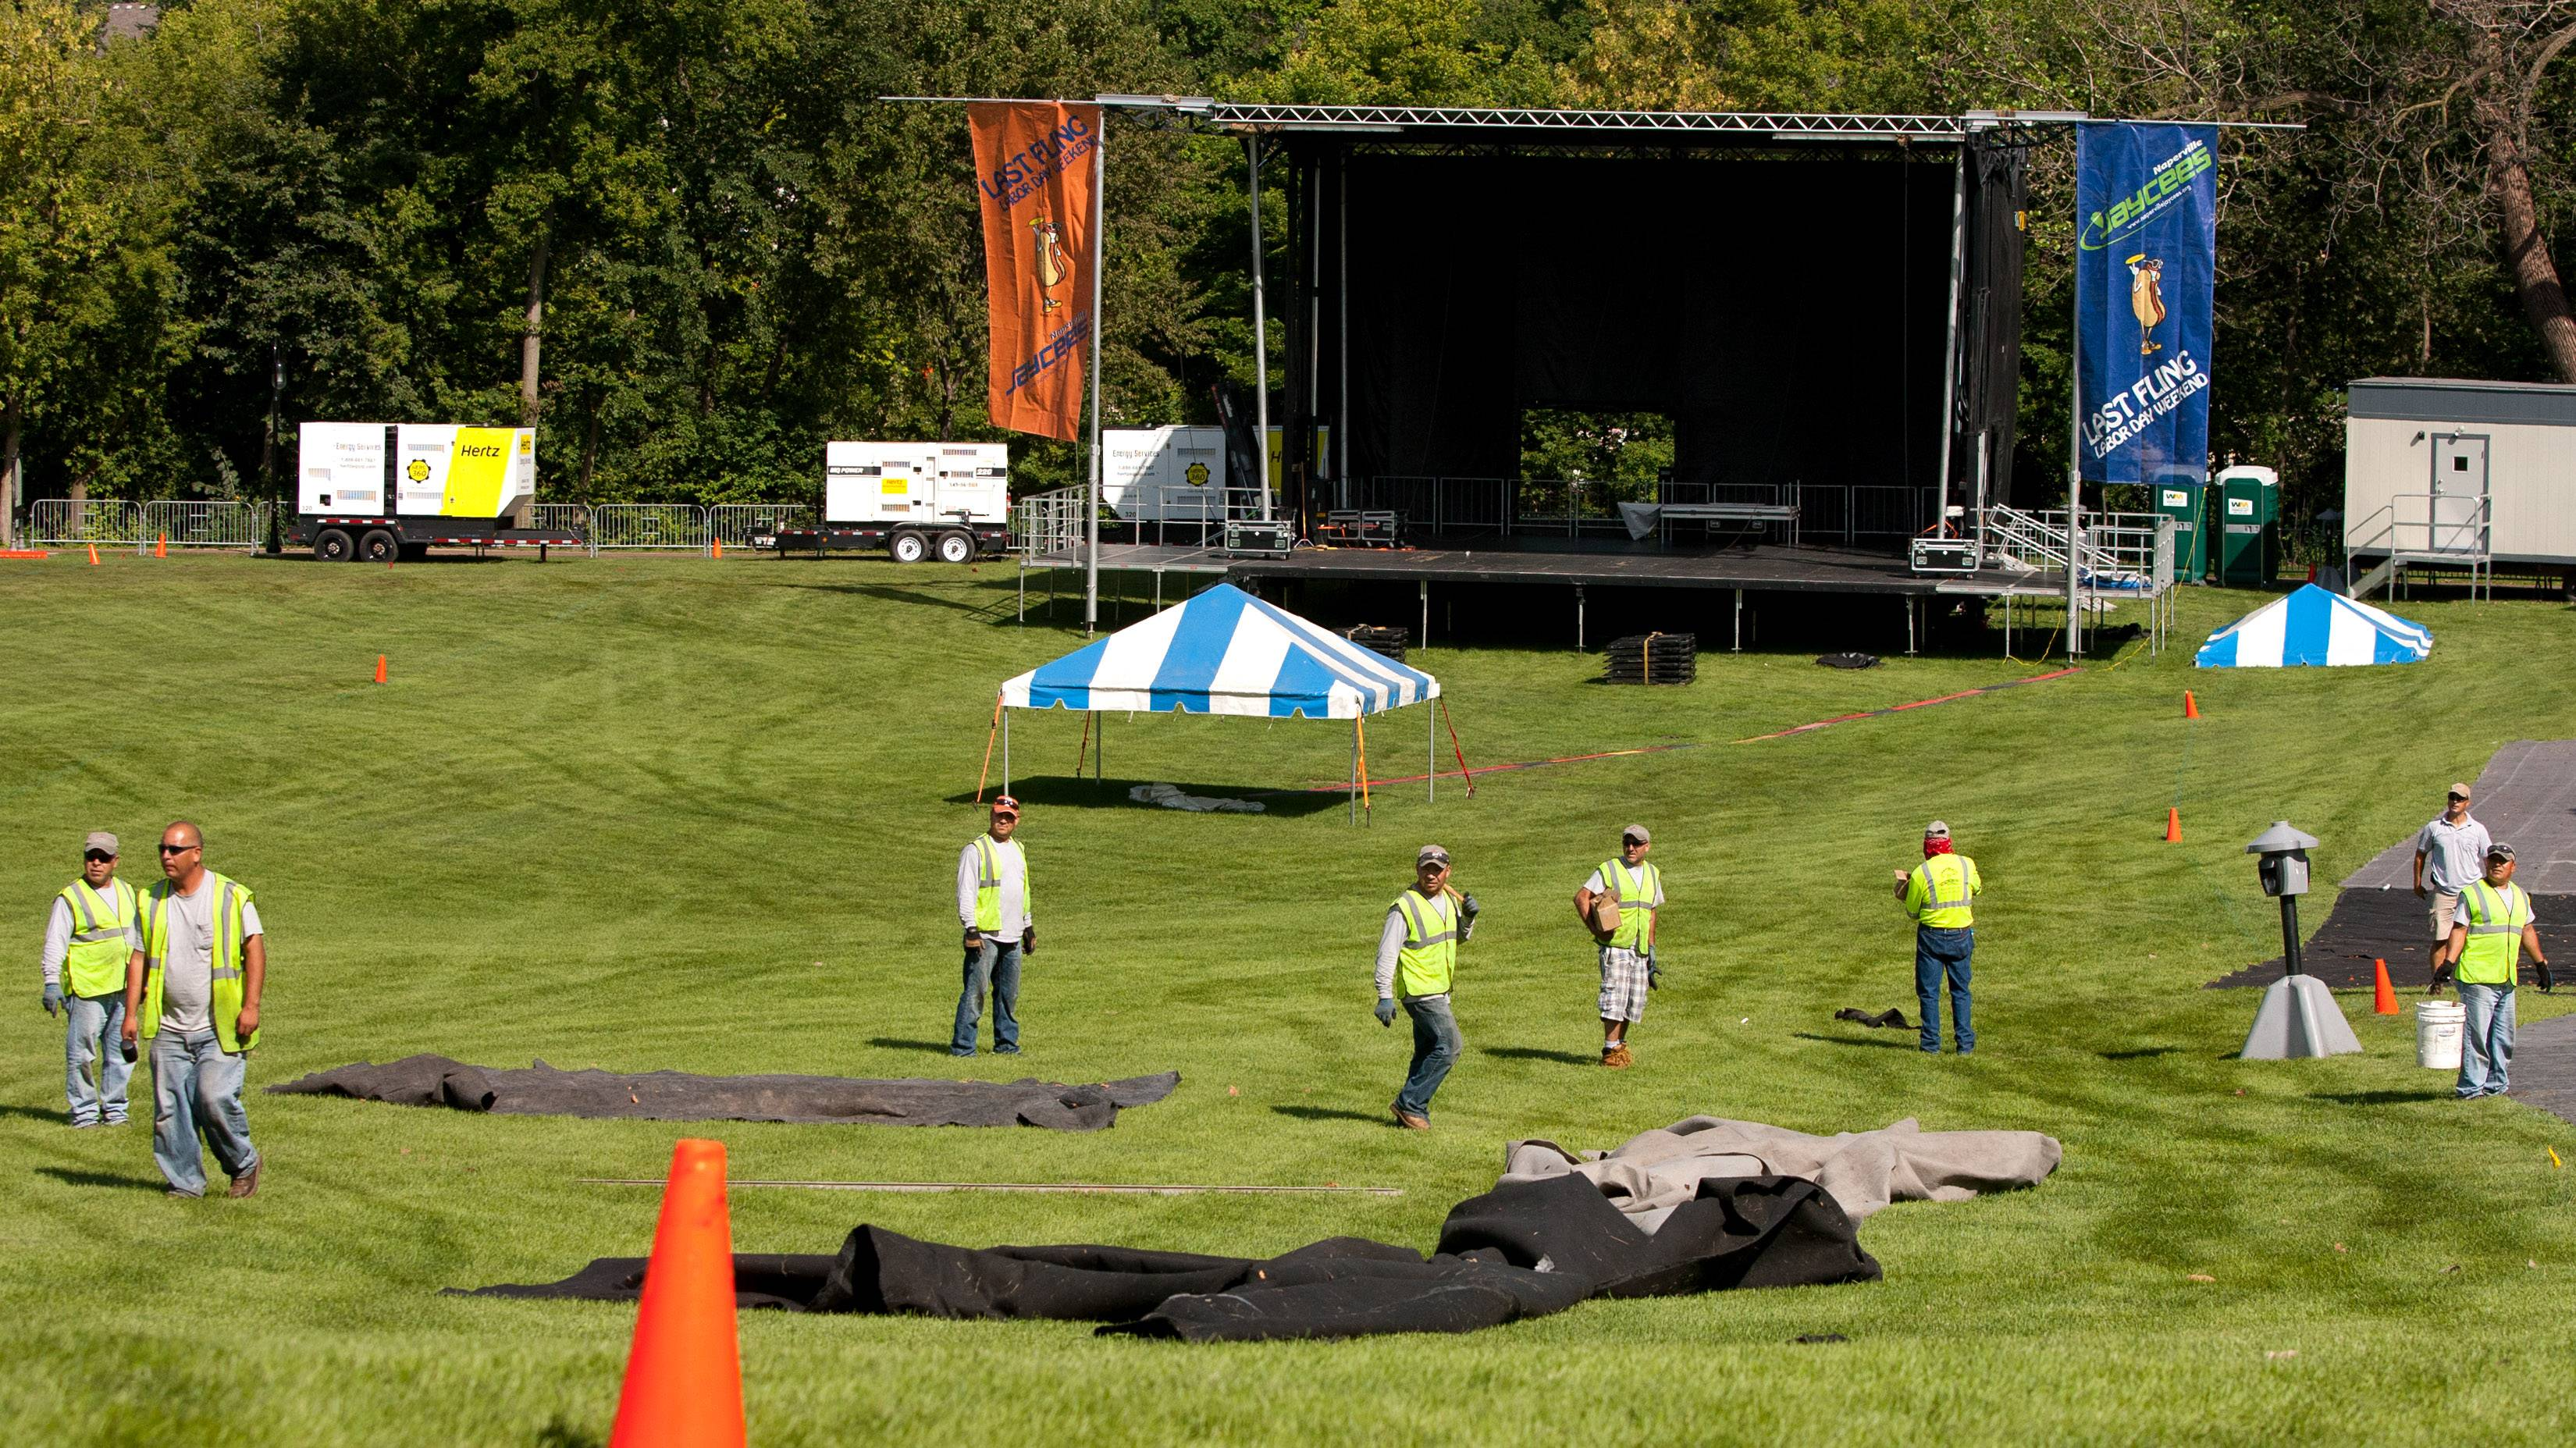 Workers continue working Thursday near the Main Stage area where bands such as O.A.R. and Smash Mouth will perform this weekend as part of Naperville's Last Fling celebration.